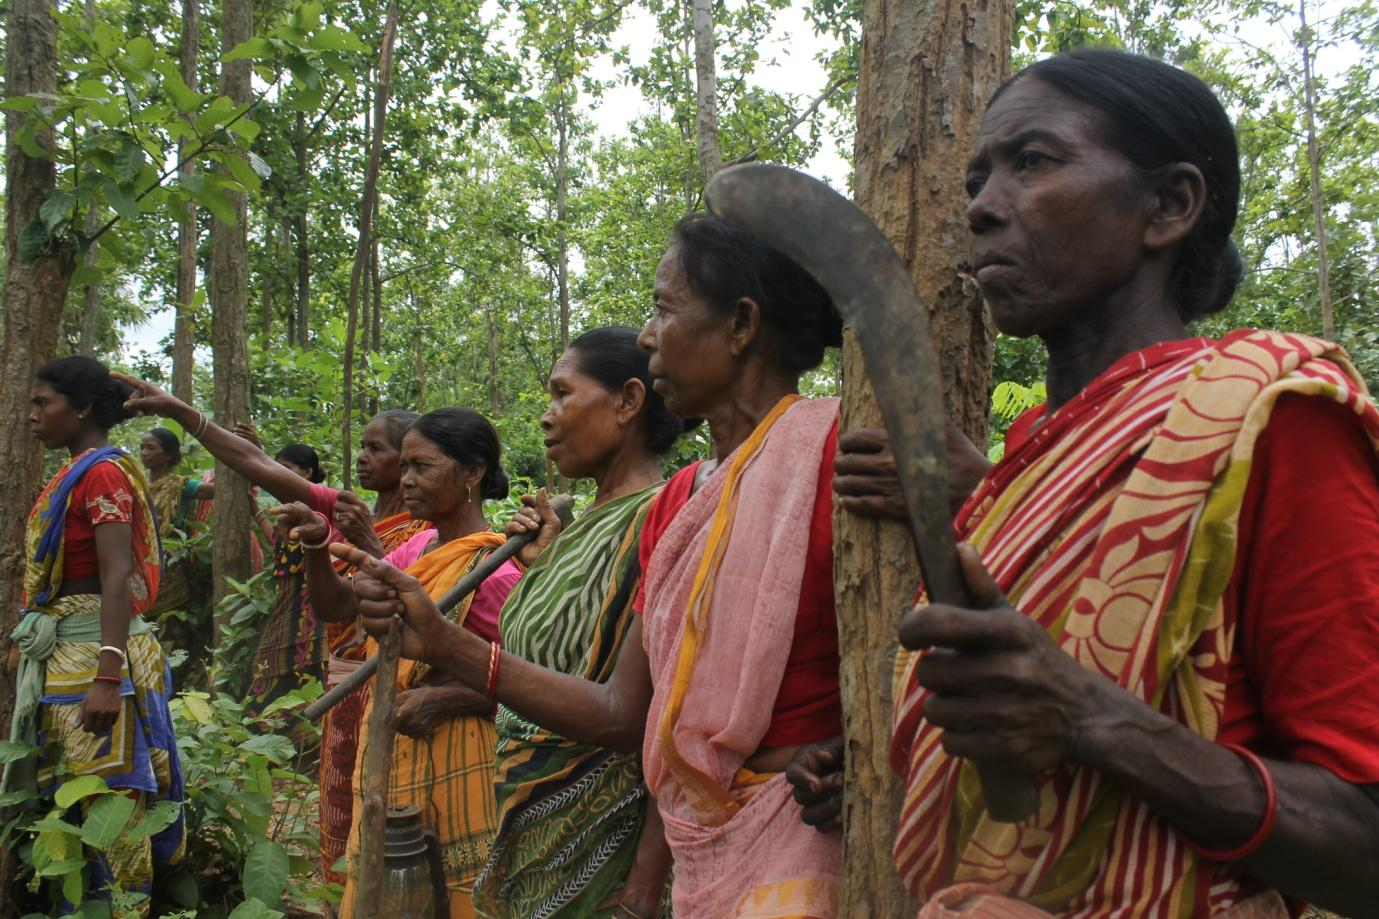 India: With Just Sickles And Sticks, Adivasi Women Save A Forest